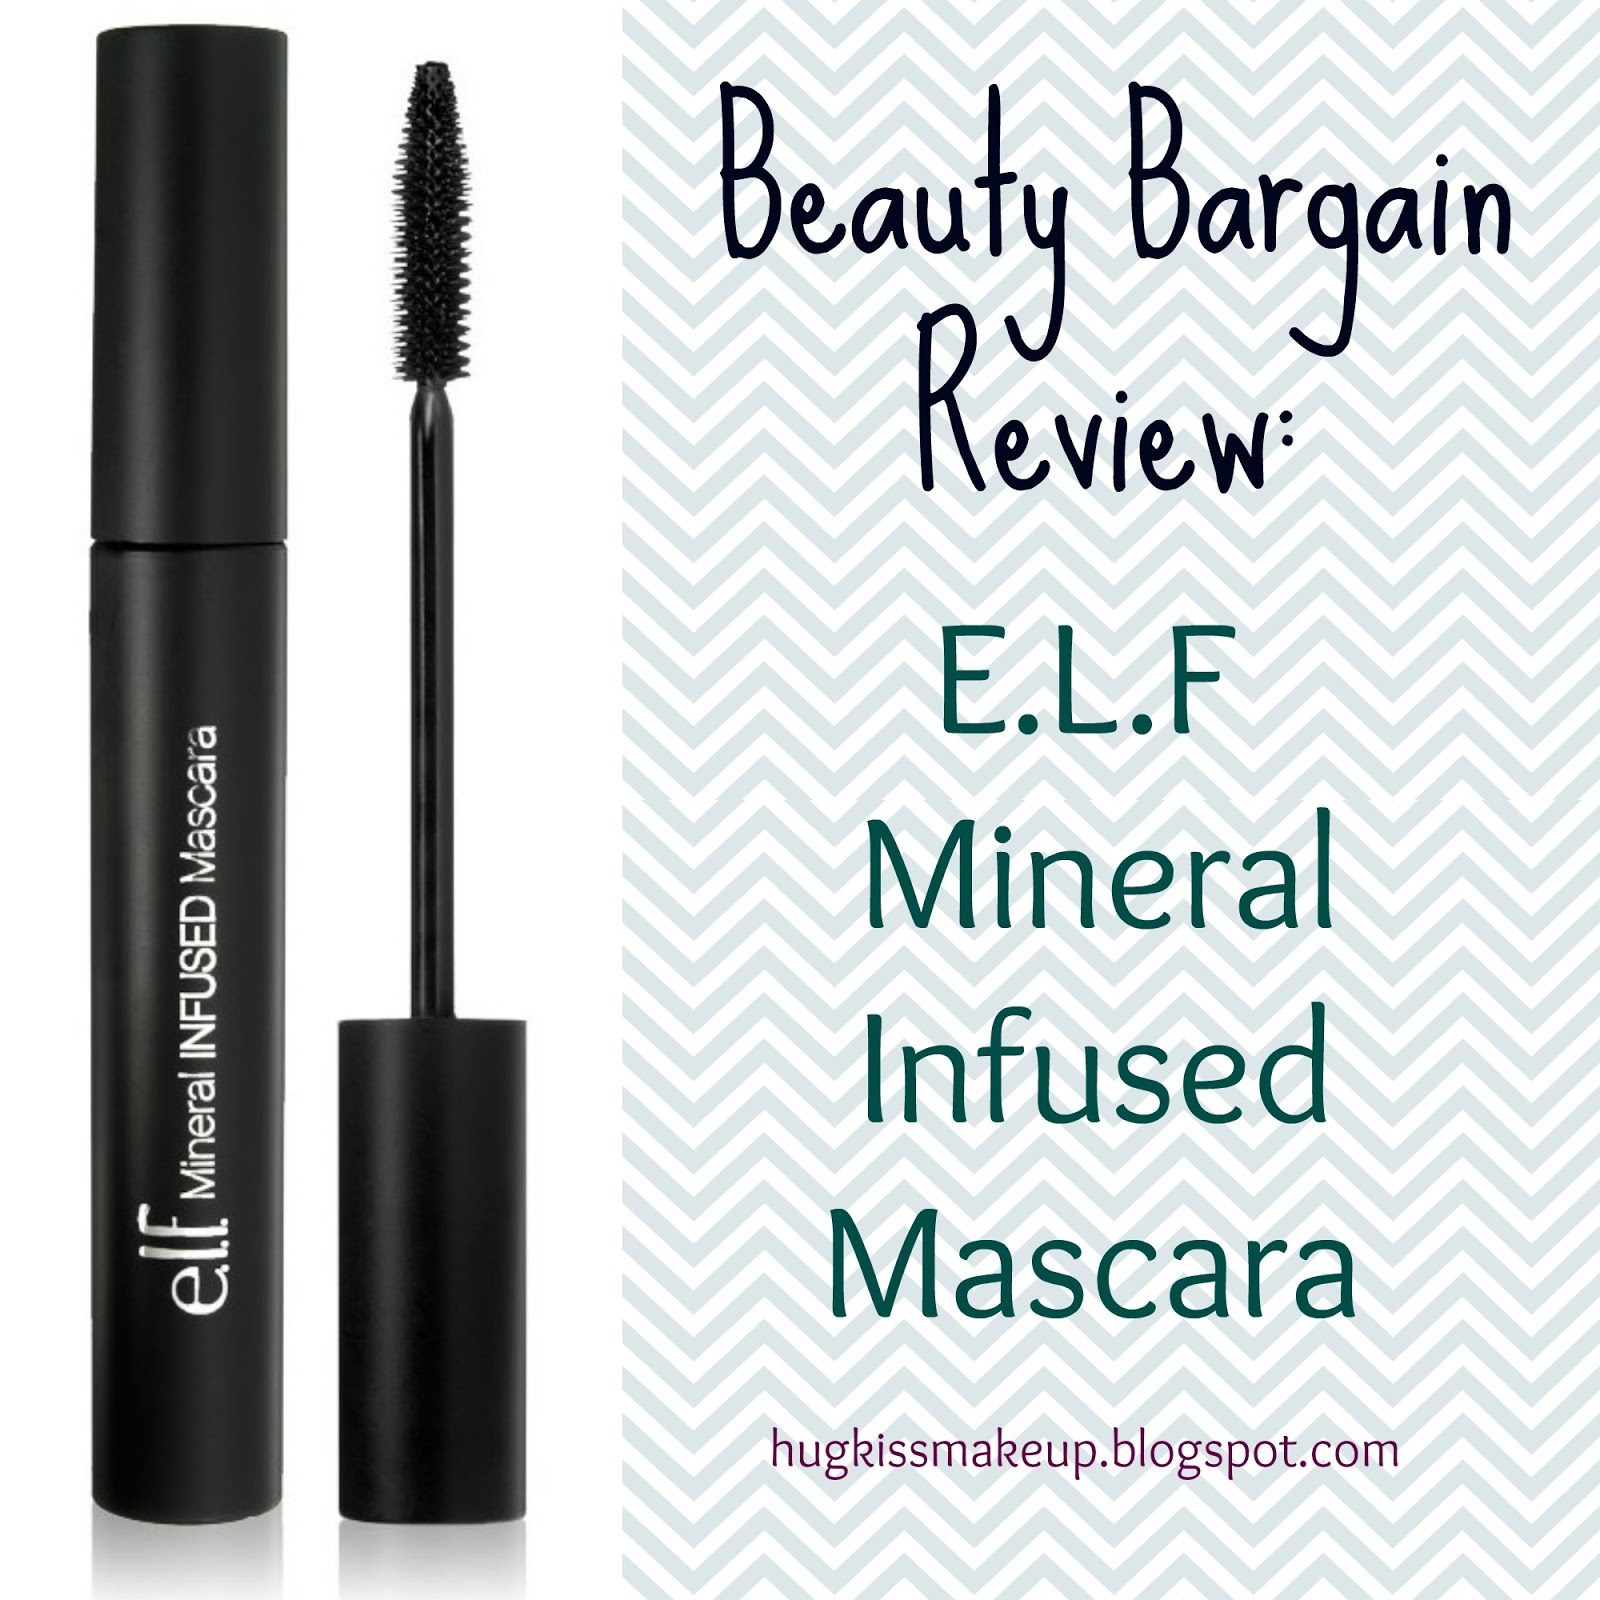 Elf mineral mascara review